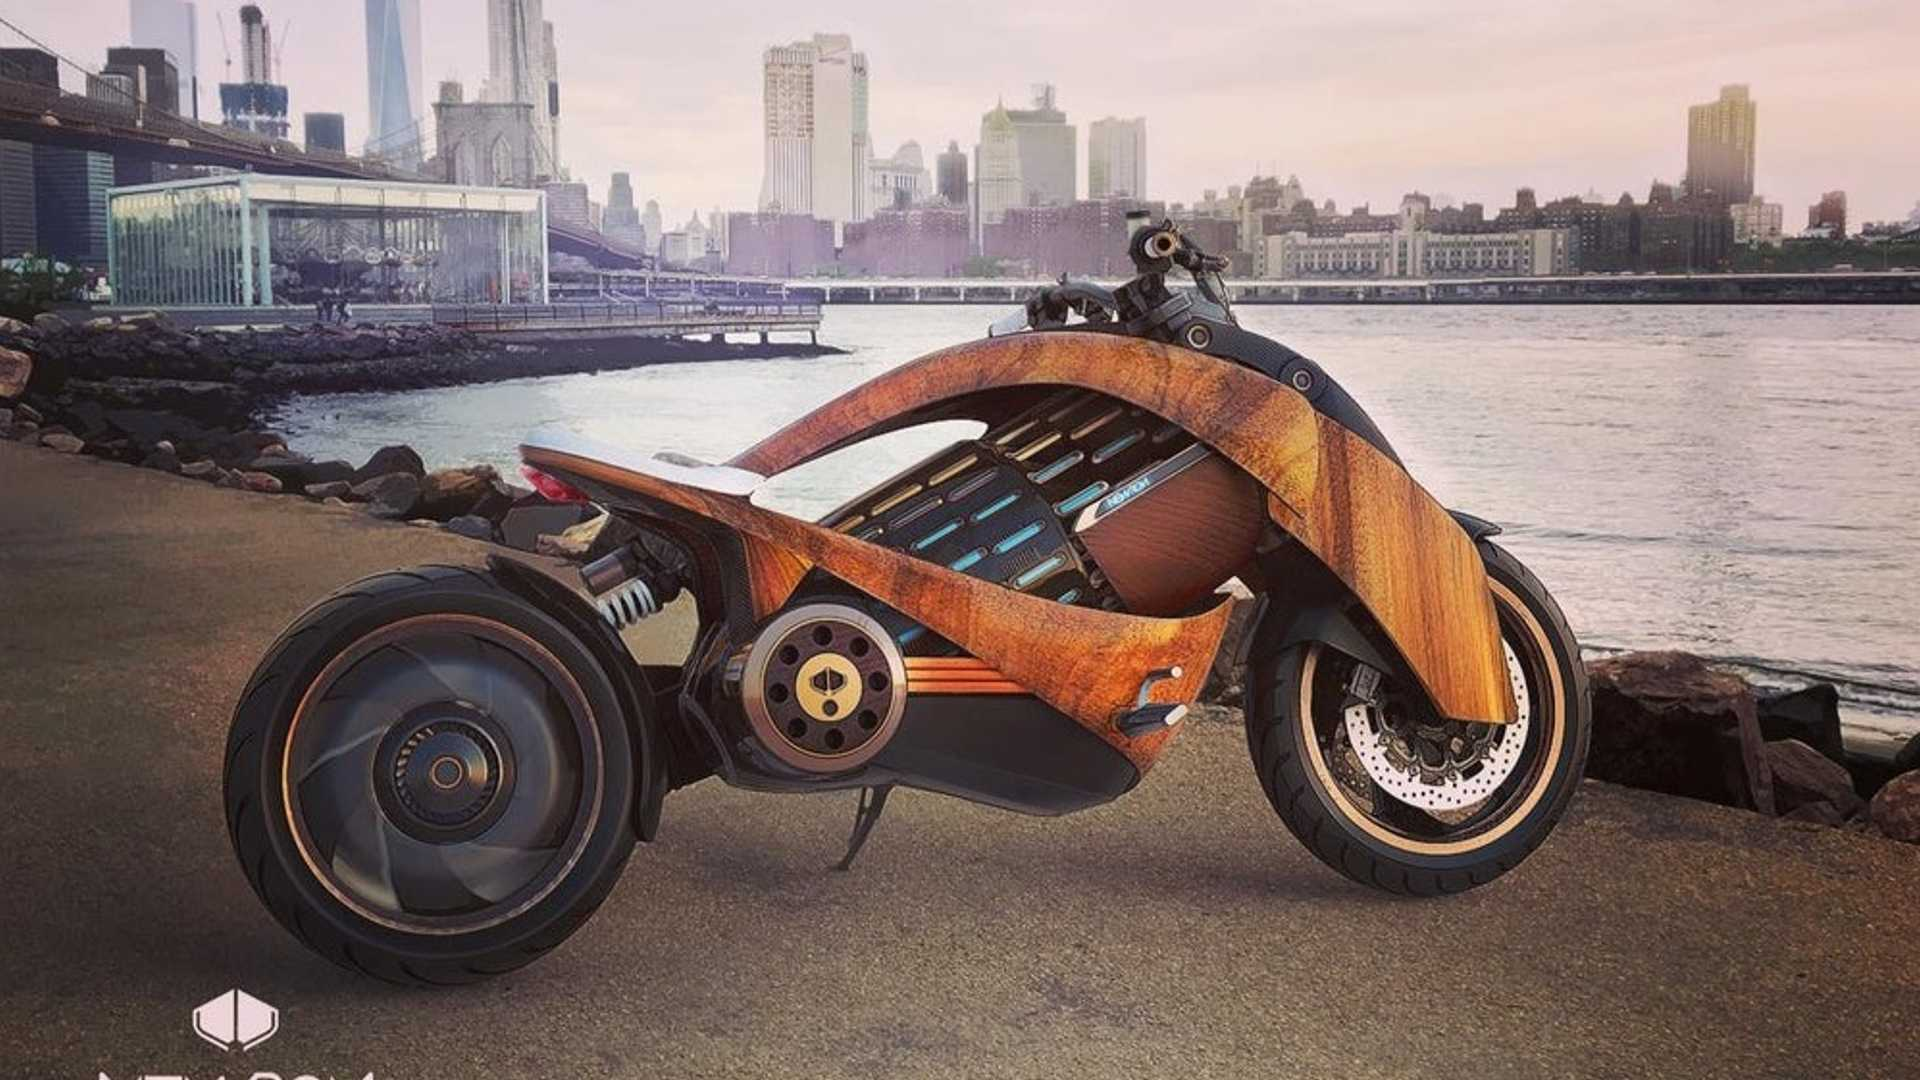 A Dangerous Beauty: Newron's New Wooden Electric Motorcycle